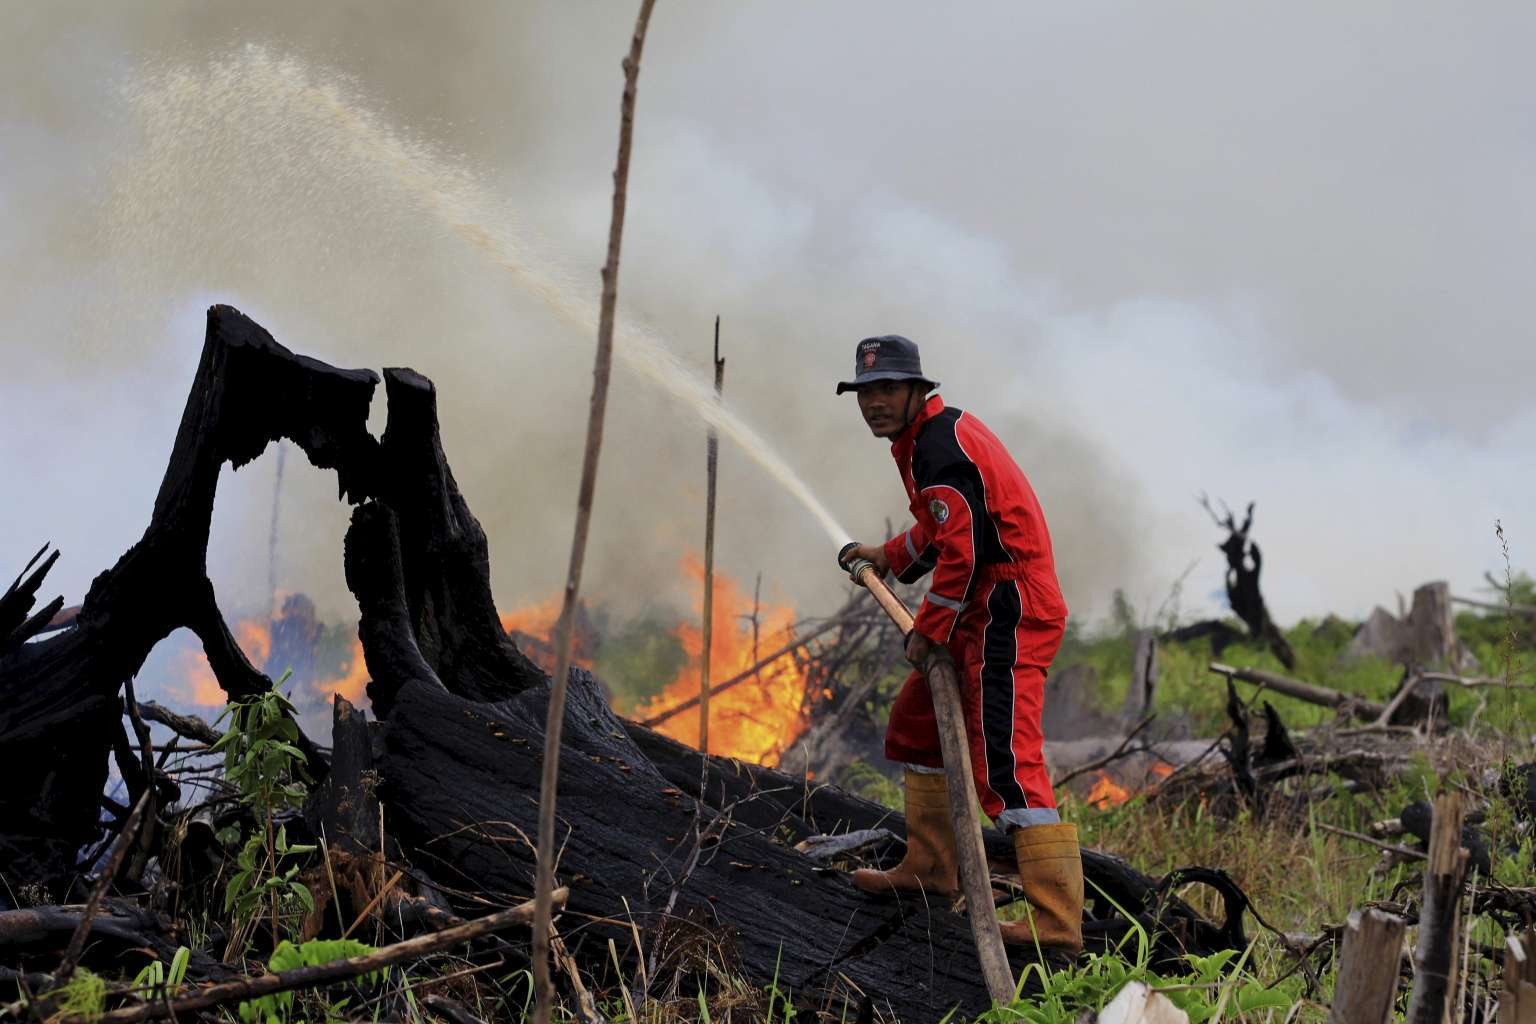 A fire fighter tries to put out a fire on land intended for a palm oil plantation in the village of Tanjung Palas, Dumai, Riau province, Sumatra, Indonesia on 5 March.